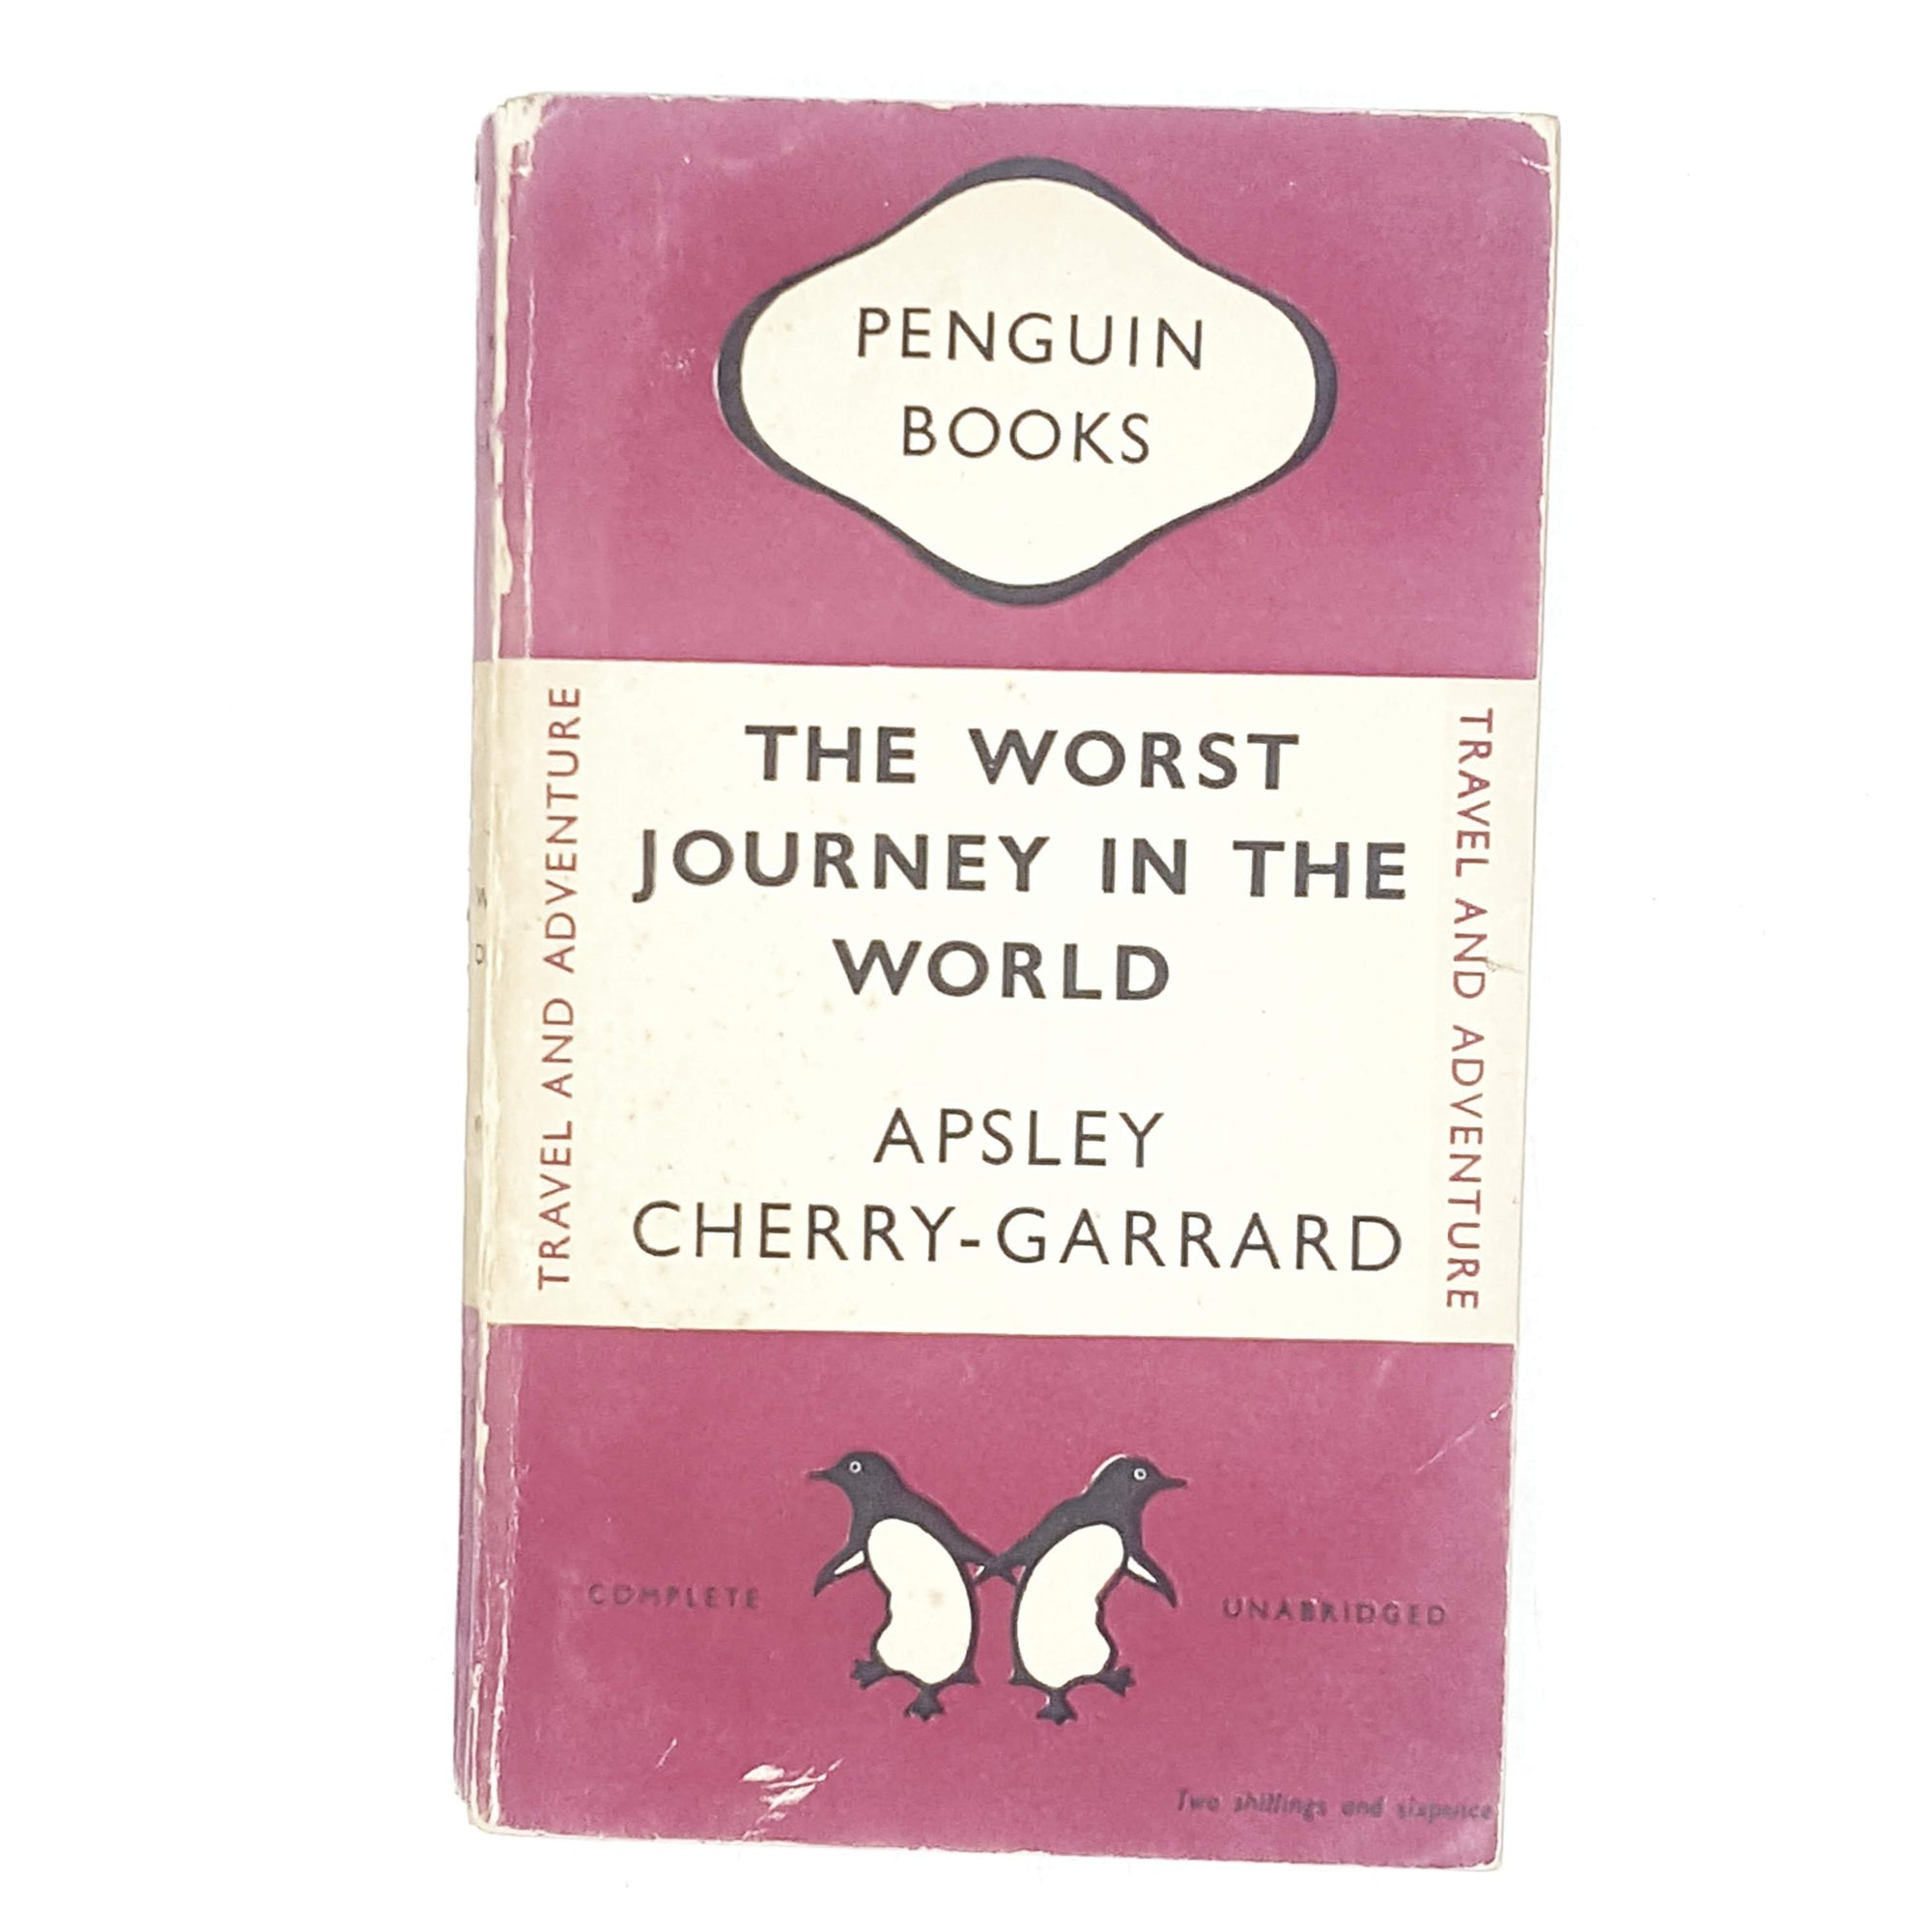 The Worst Journey in the World by Apsley Cherry-Garrard 1948